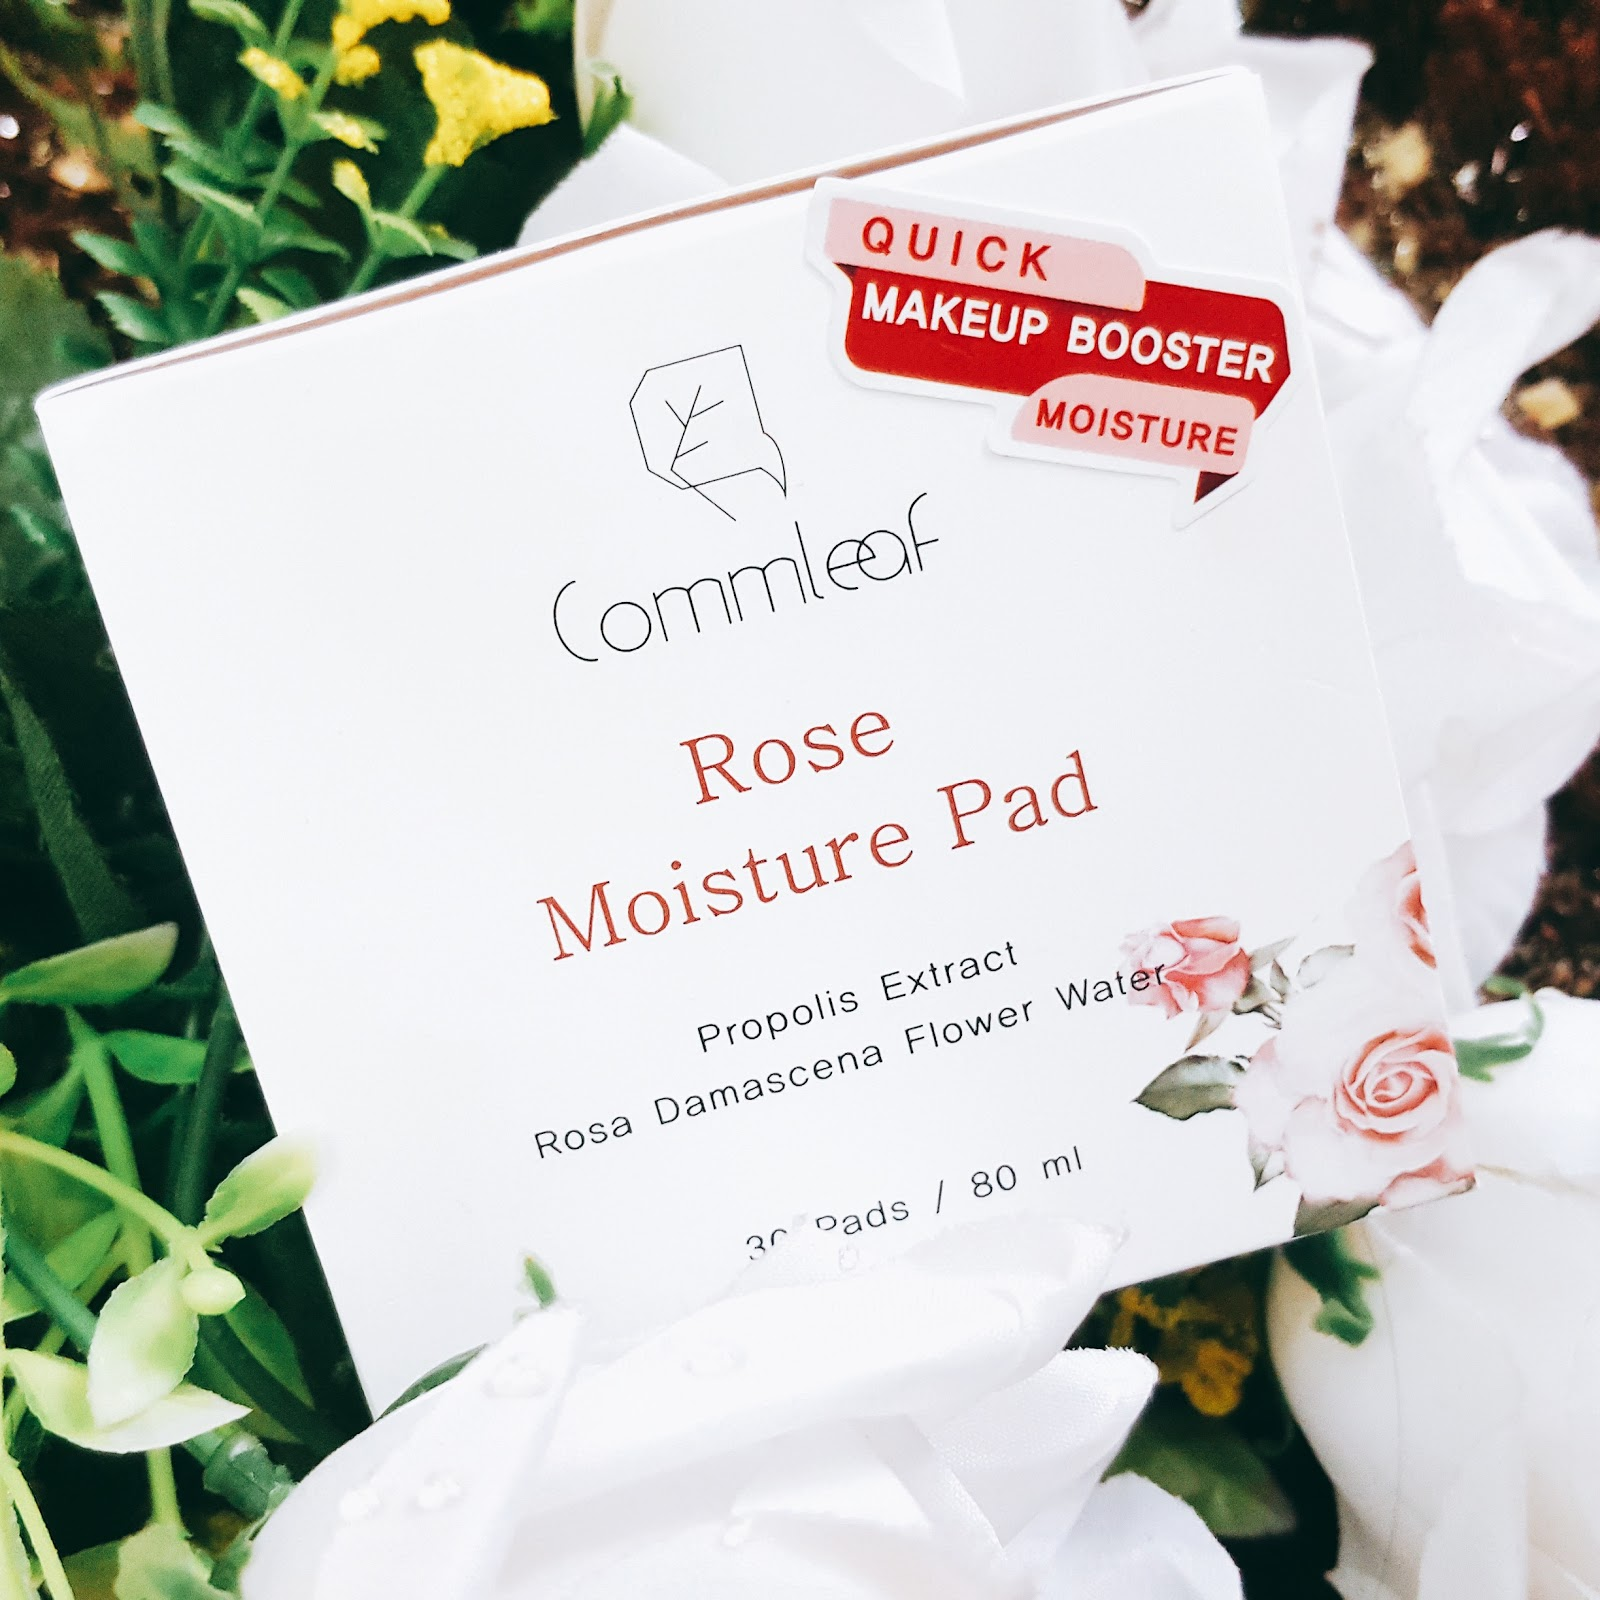 commleaf rose moisture pads